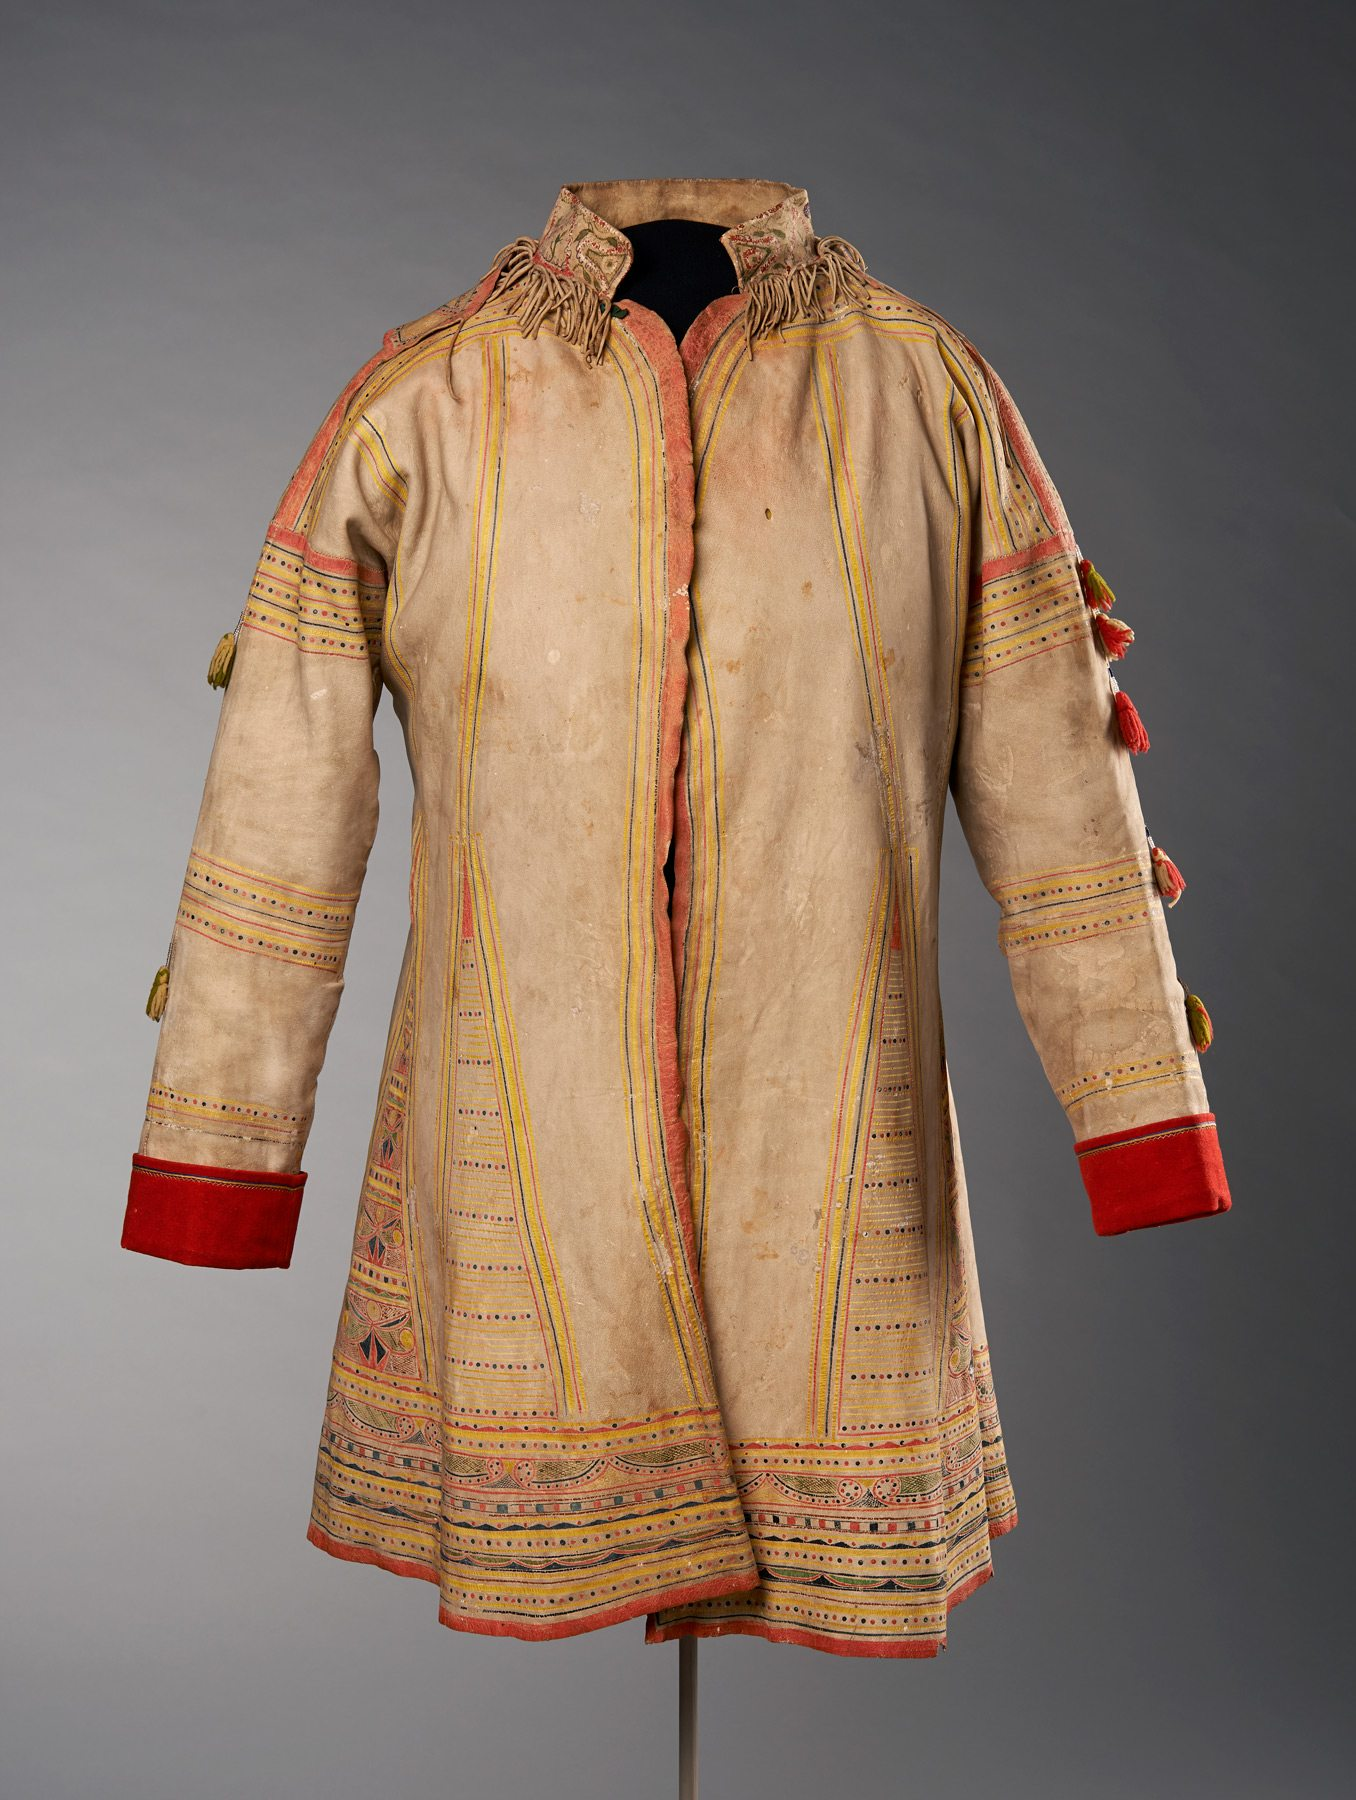 Unknown (Naskapi Artist) Hunting Coat, c. 1840 caribou hide, paint, thread, wool and glass beads, overall measurements on mannequin: 95 x 80 x 50 cm Purchased 2014 National Gallery of Canada, Ottawa Photo: NGC